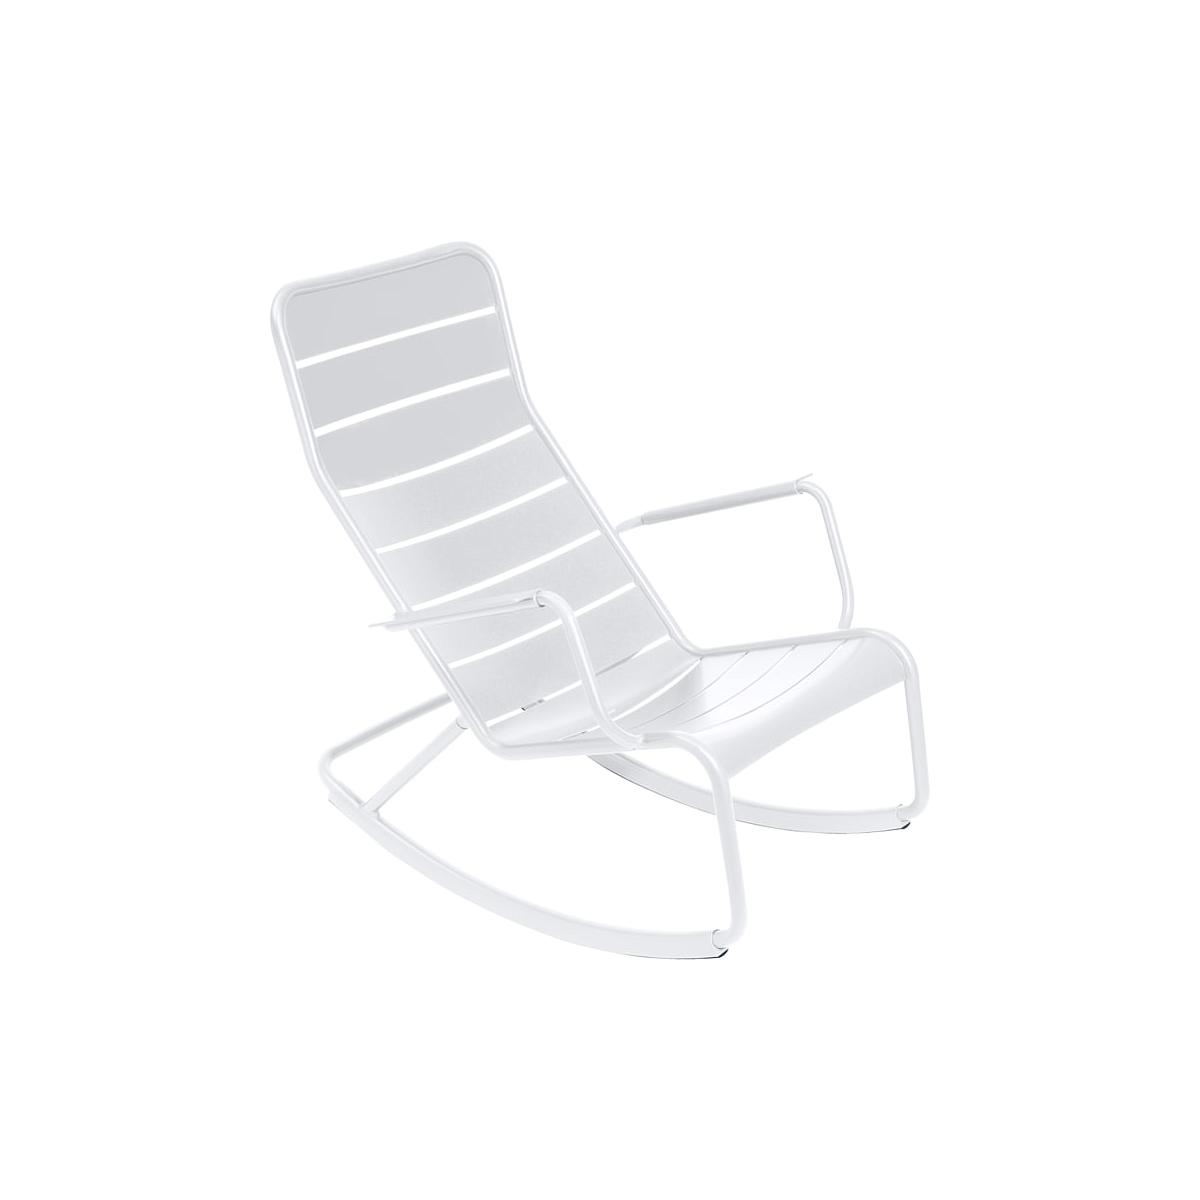 LUXEMBOURG by Fermob Rocking chair Blanc coton